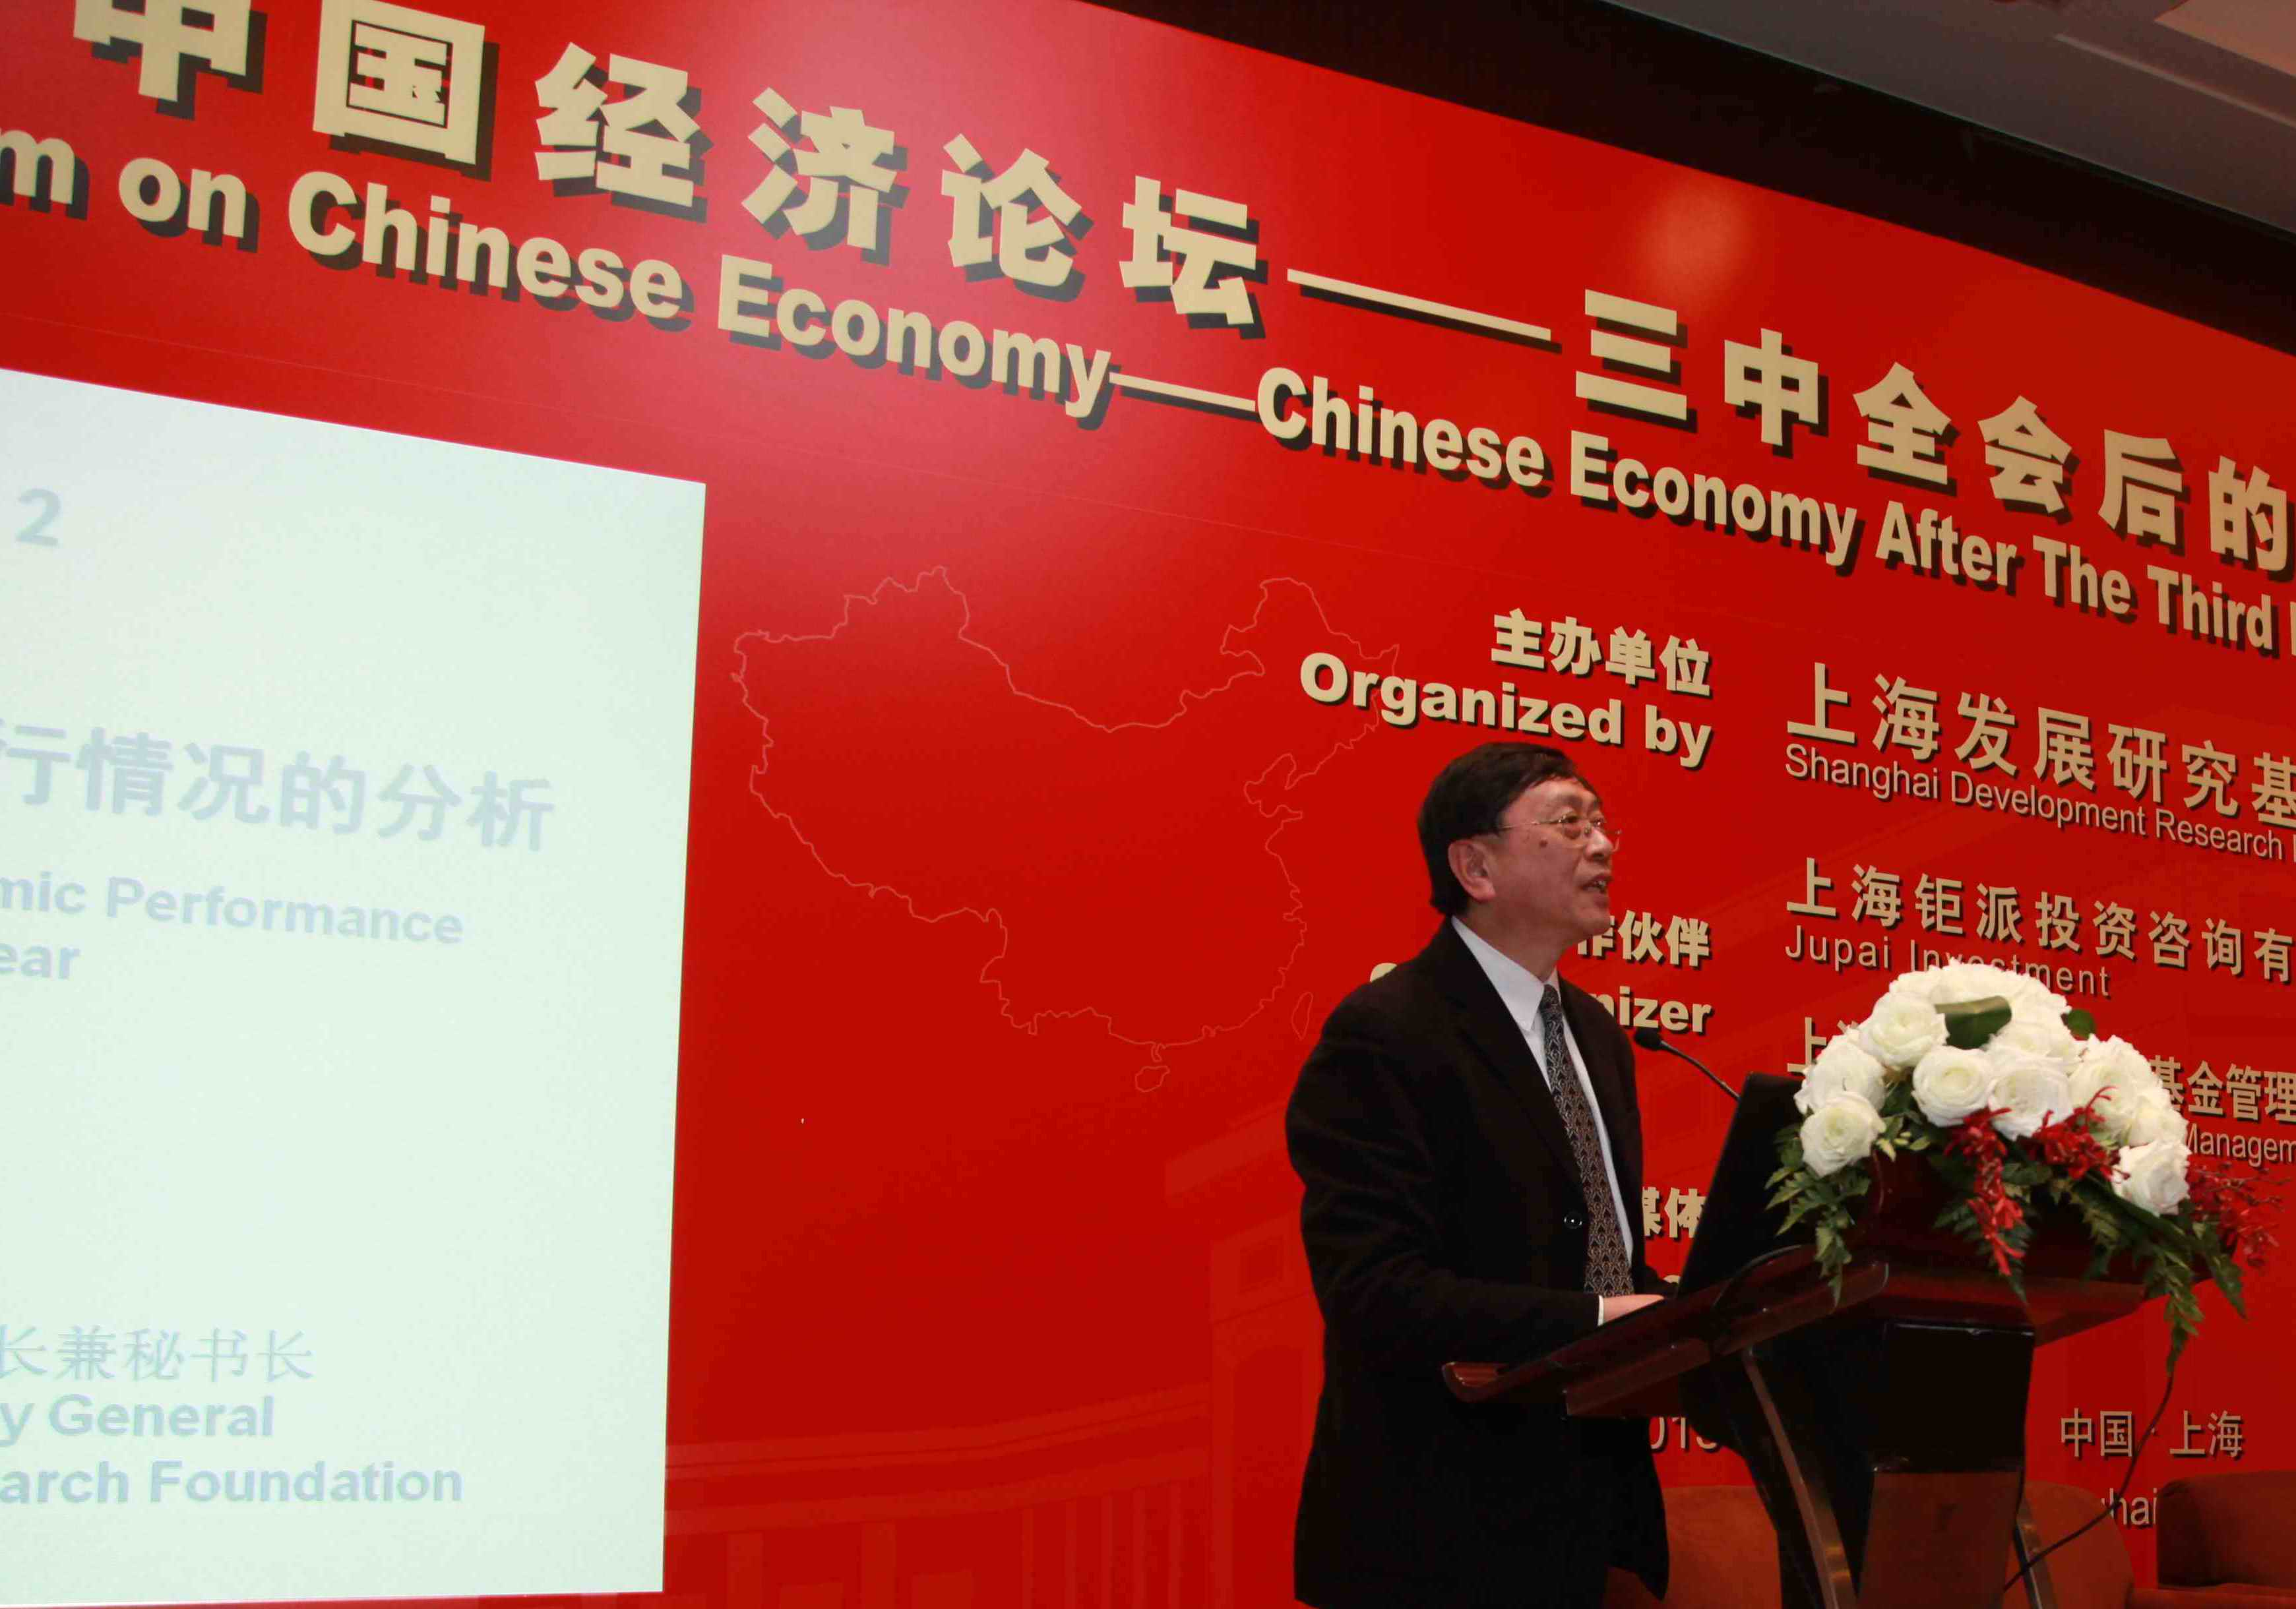 Forum on Chinese Economy